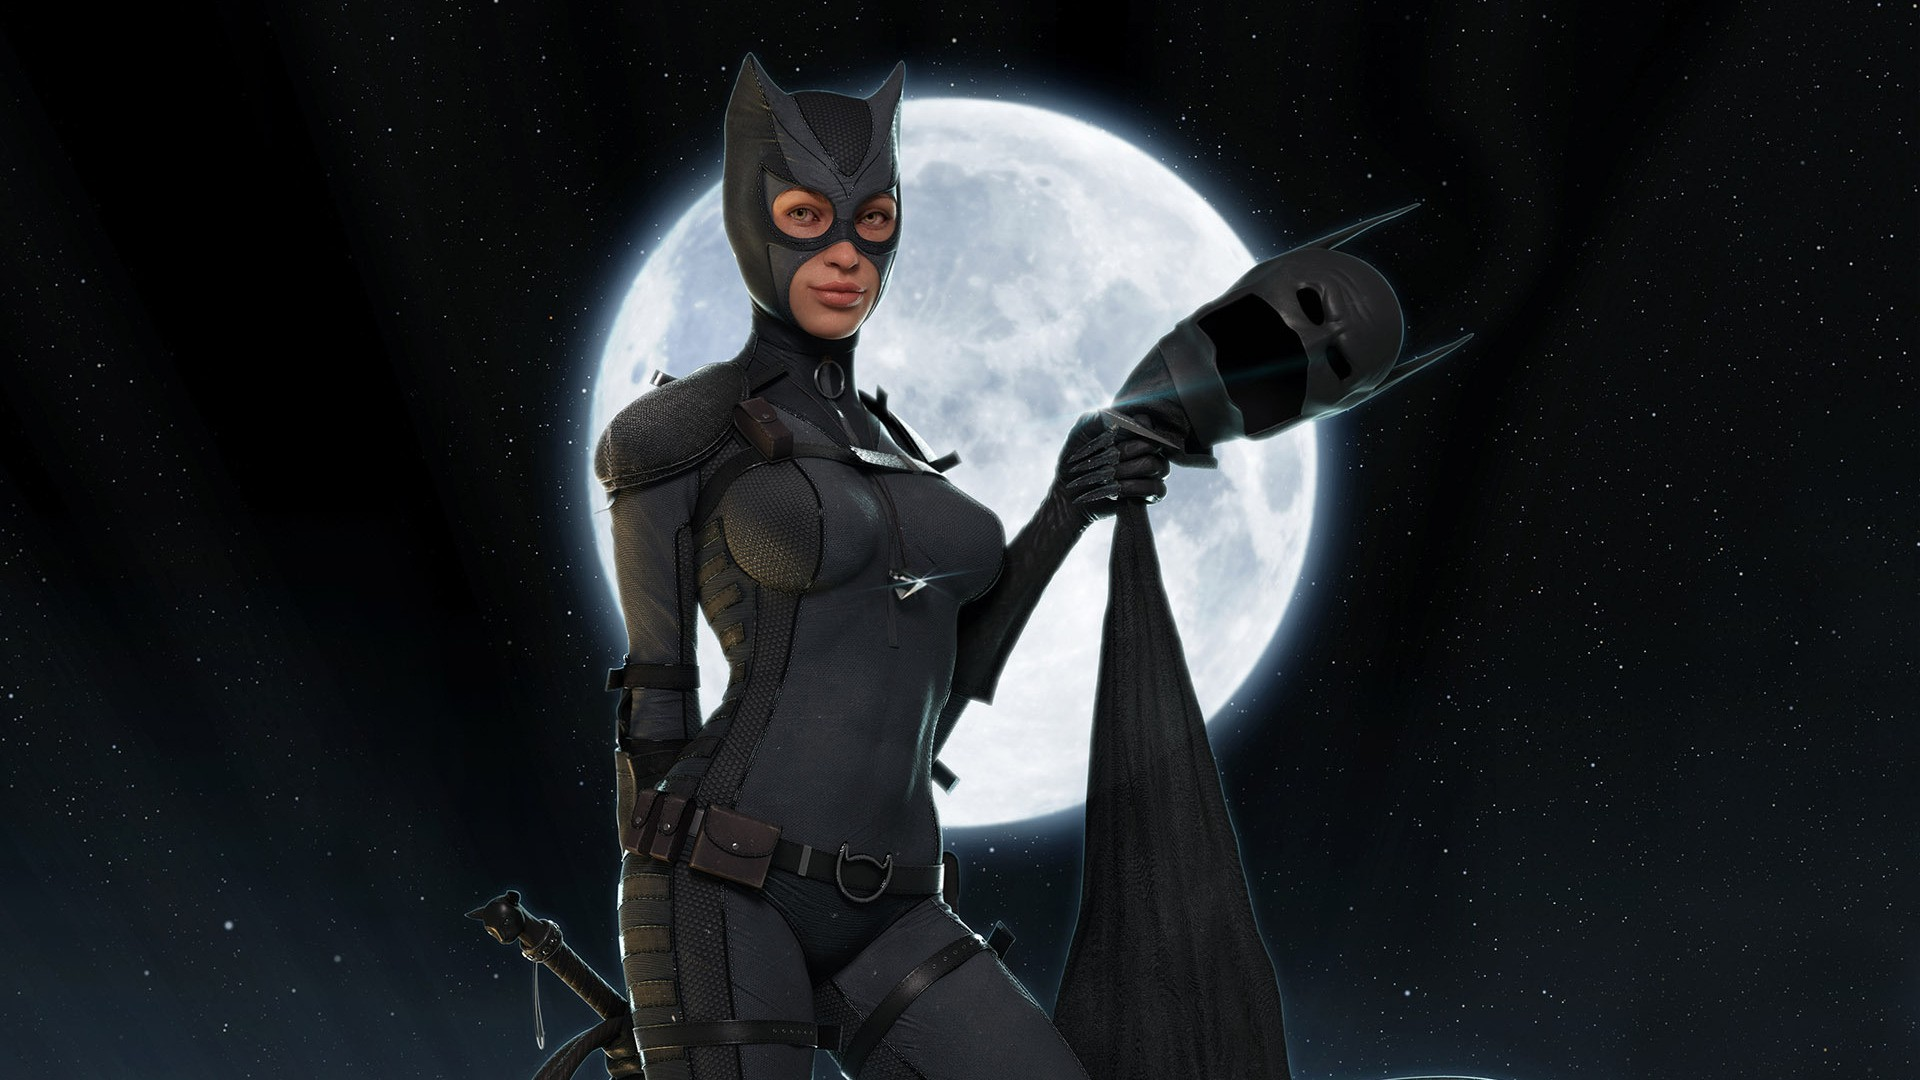 Catwoman batman black catwoman fantasy moon night selina kyle 1920x1080